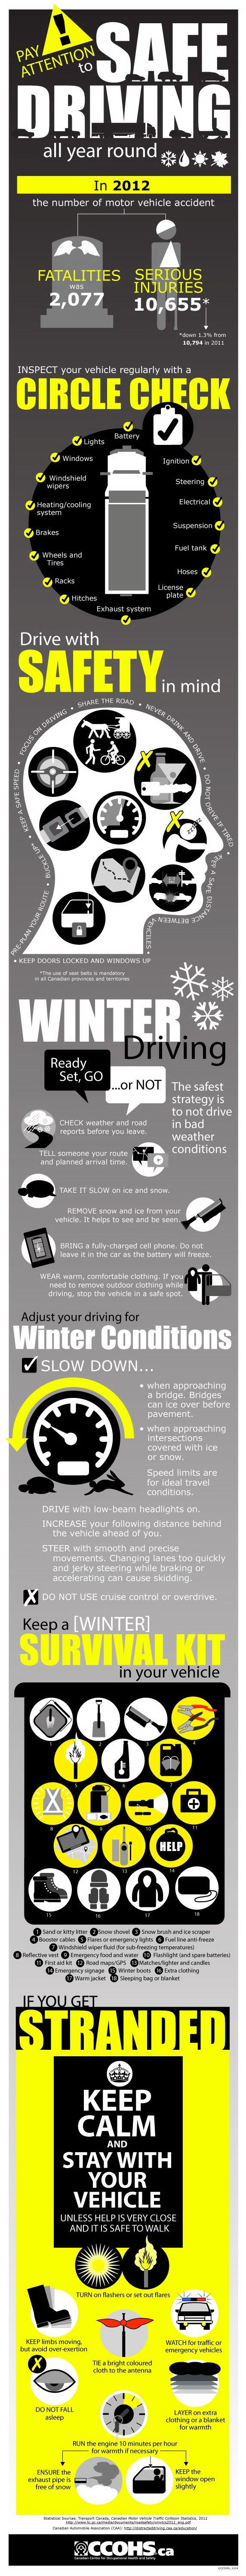 This Driving Safety infographic is packed with tips to drive and arrive, with safety in mind. Some more winter driving tips: http://www.ccohs.ca/oshanswers/safety_haz/icesnow.html